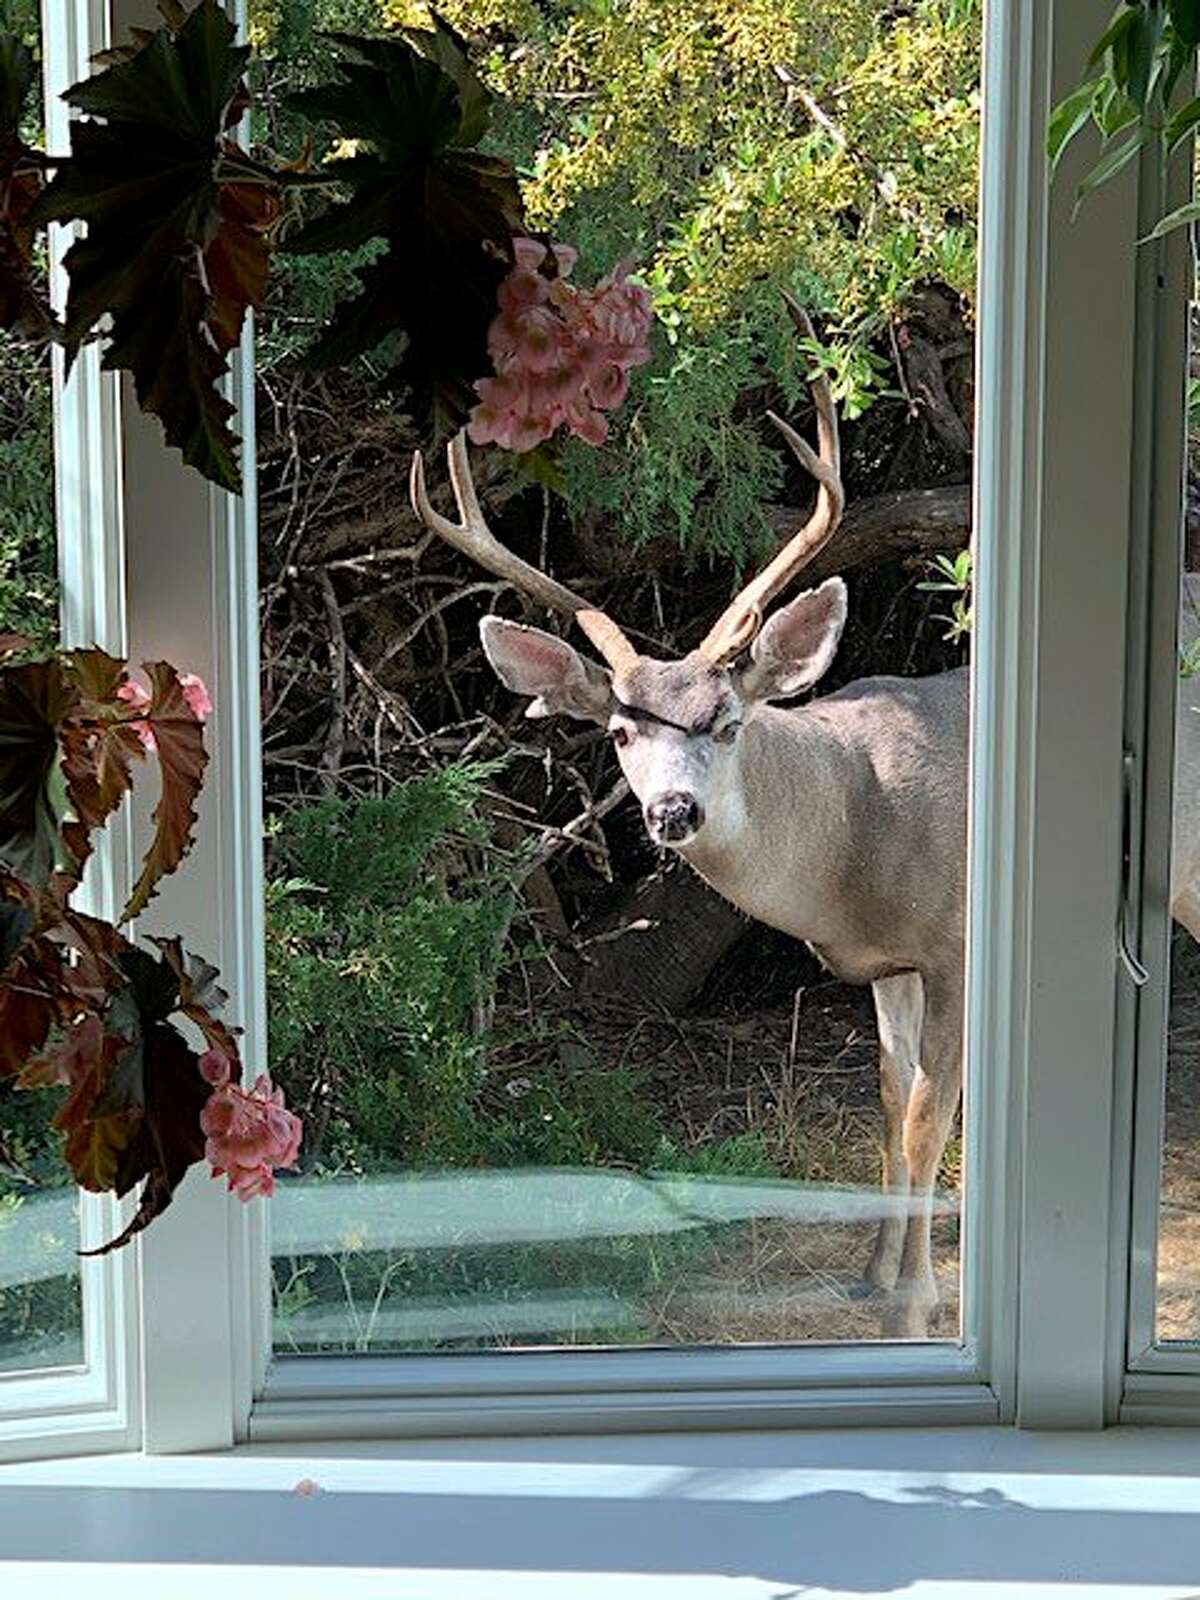 In Walnut Creek, Bob Moench heard a noise and saw a black-tailed deer, a nice buck, looking through a glass door into his living room